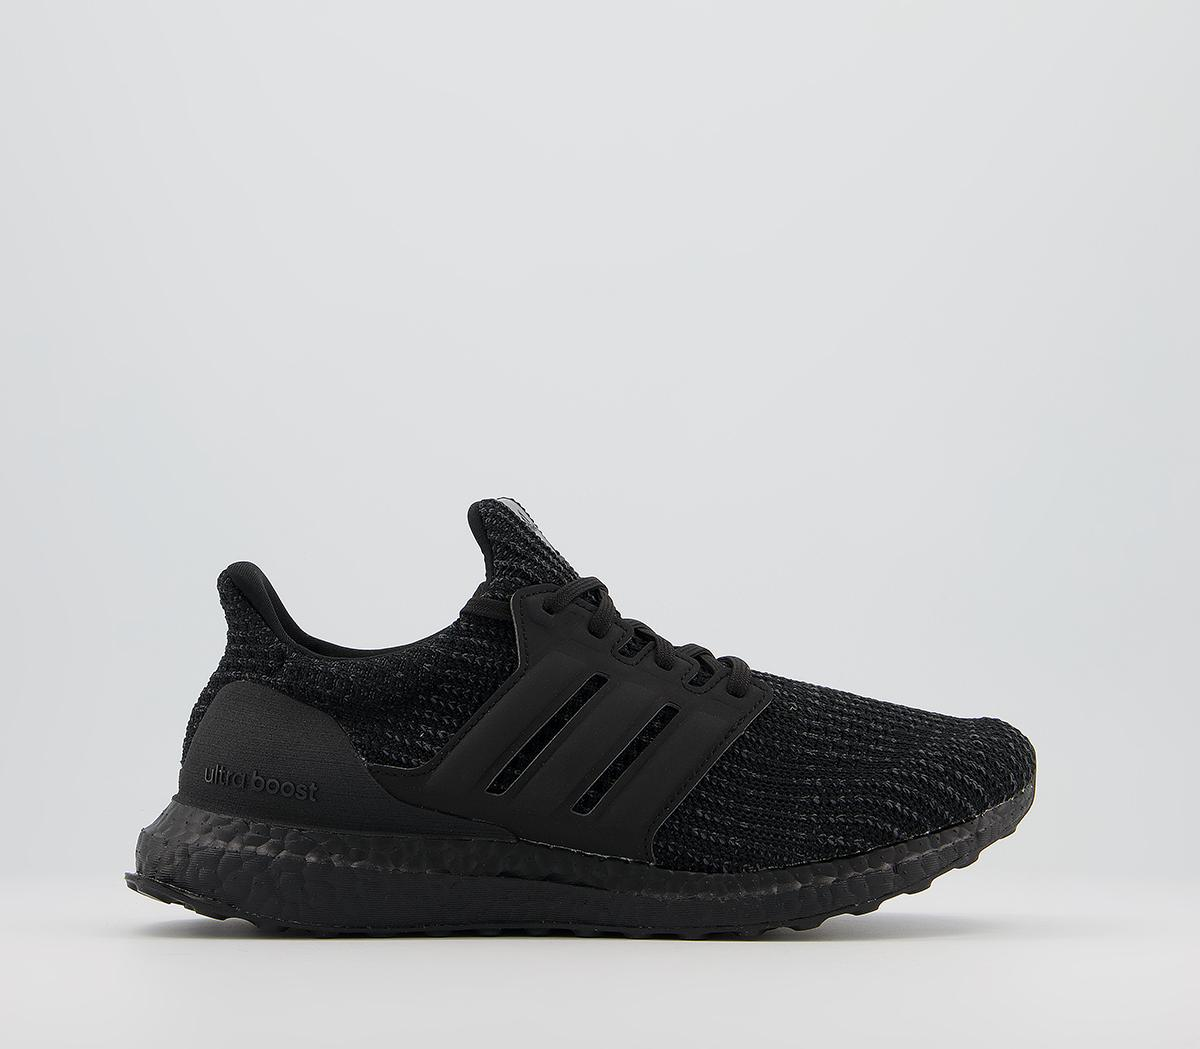 Ultraboost 4.0 Dna Trainers